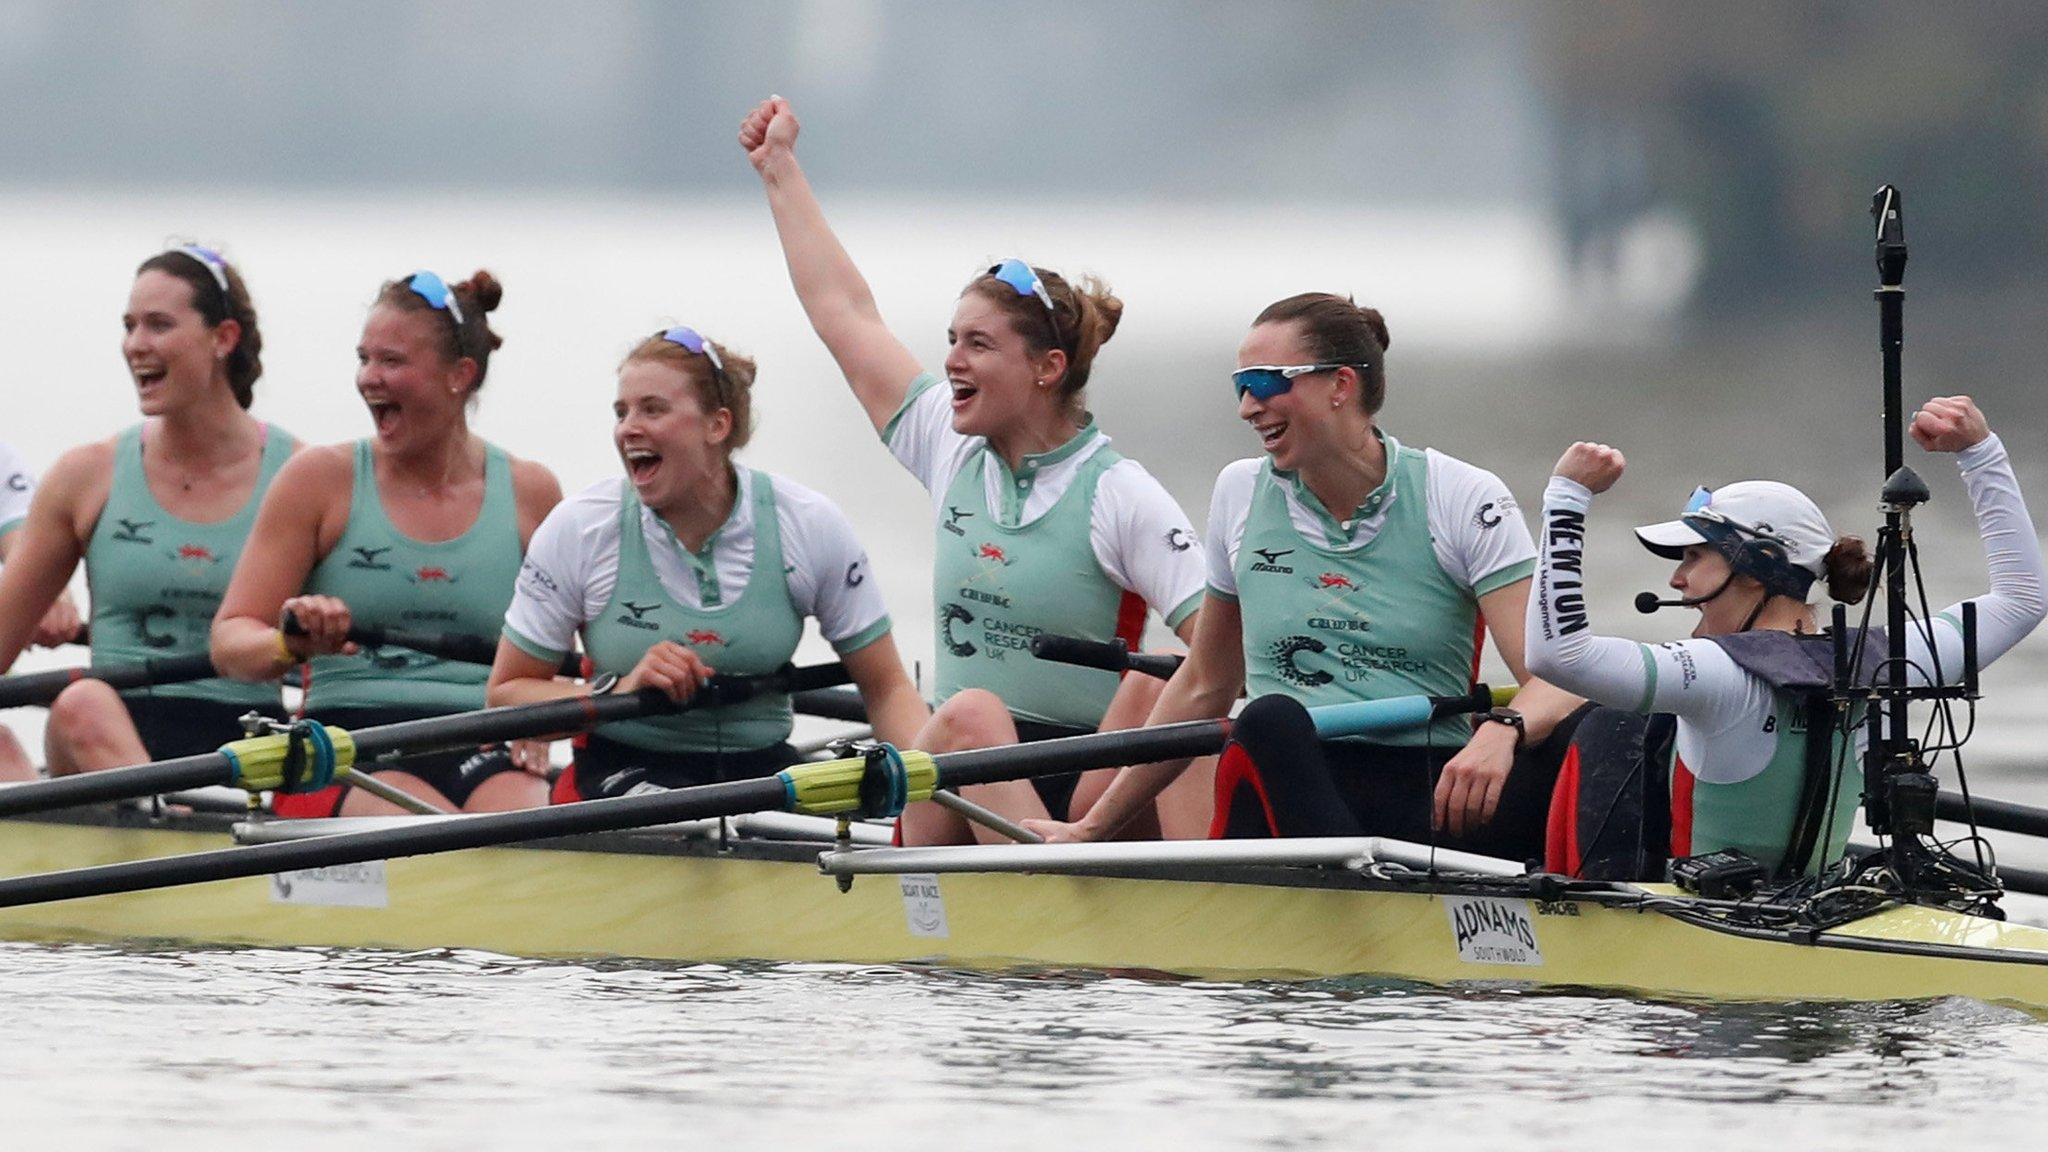 Women's Boat Race 2018: Cambridge enjoy convincing victory over Oxford